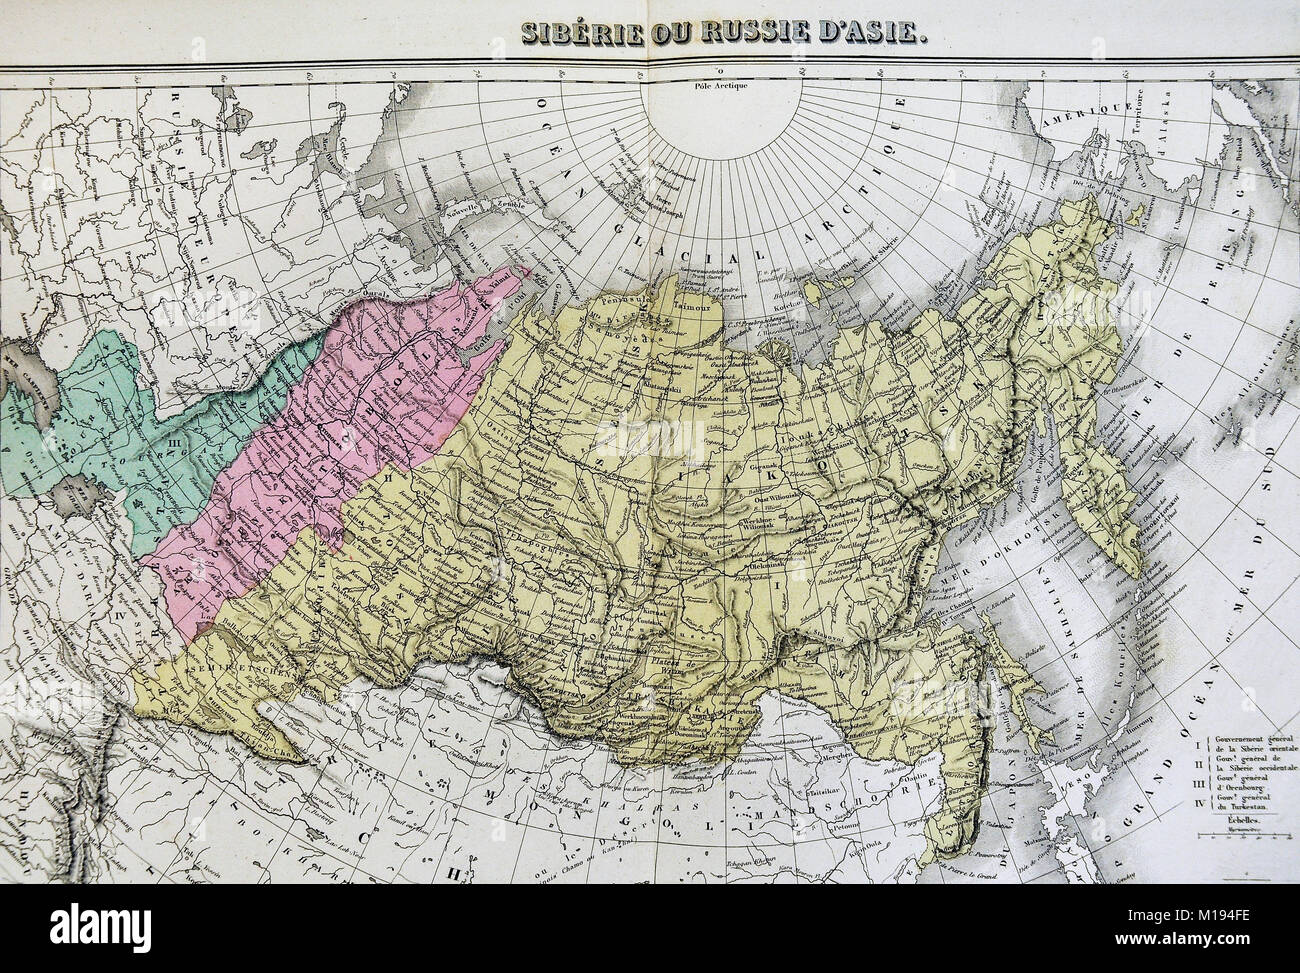 Ural Mountains Russia Stock Photos   Ural Mountains Russia Stock     1877 Migeon Map   Russia Siberia Asia   Arctic Ocean Ural Mountains   Stock  Image